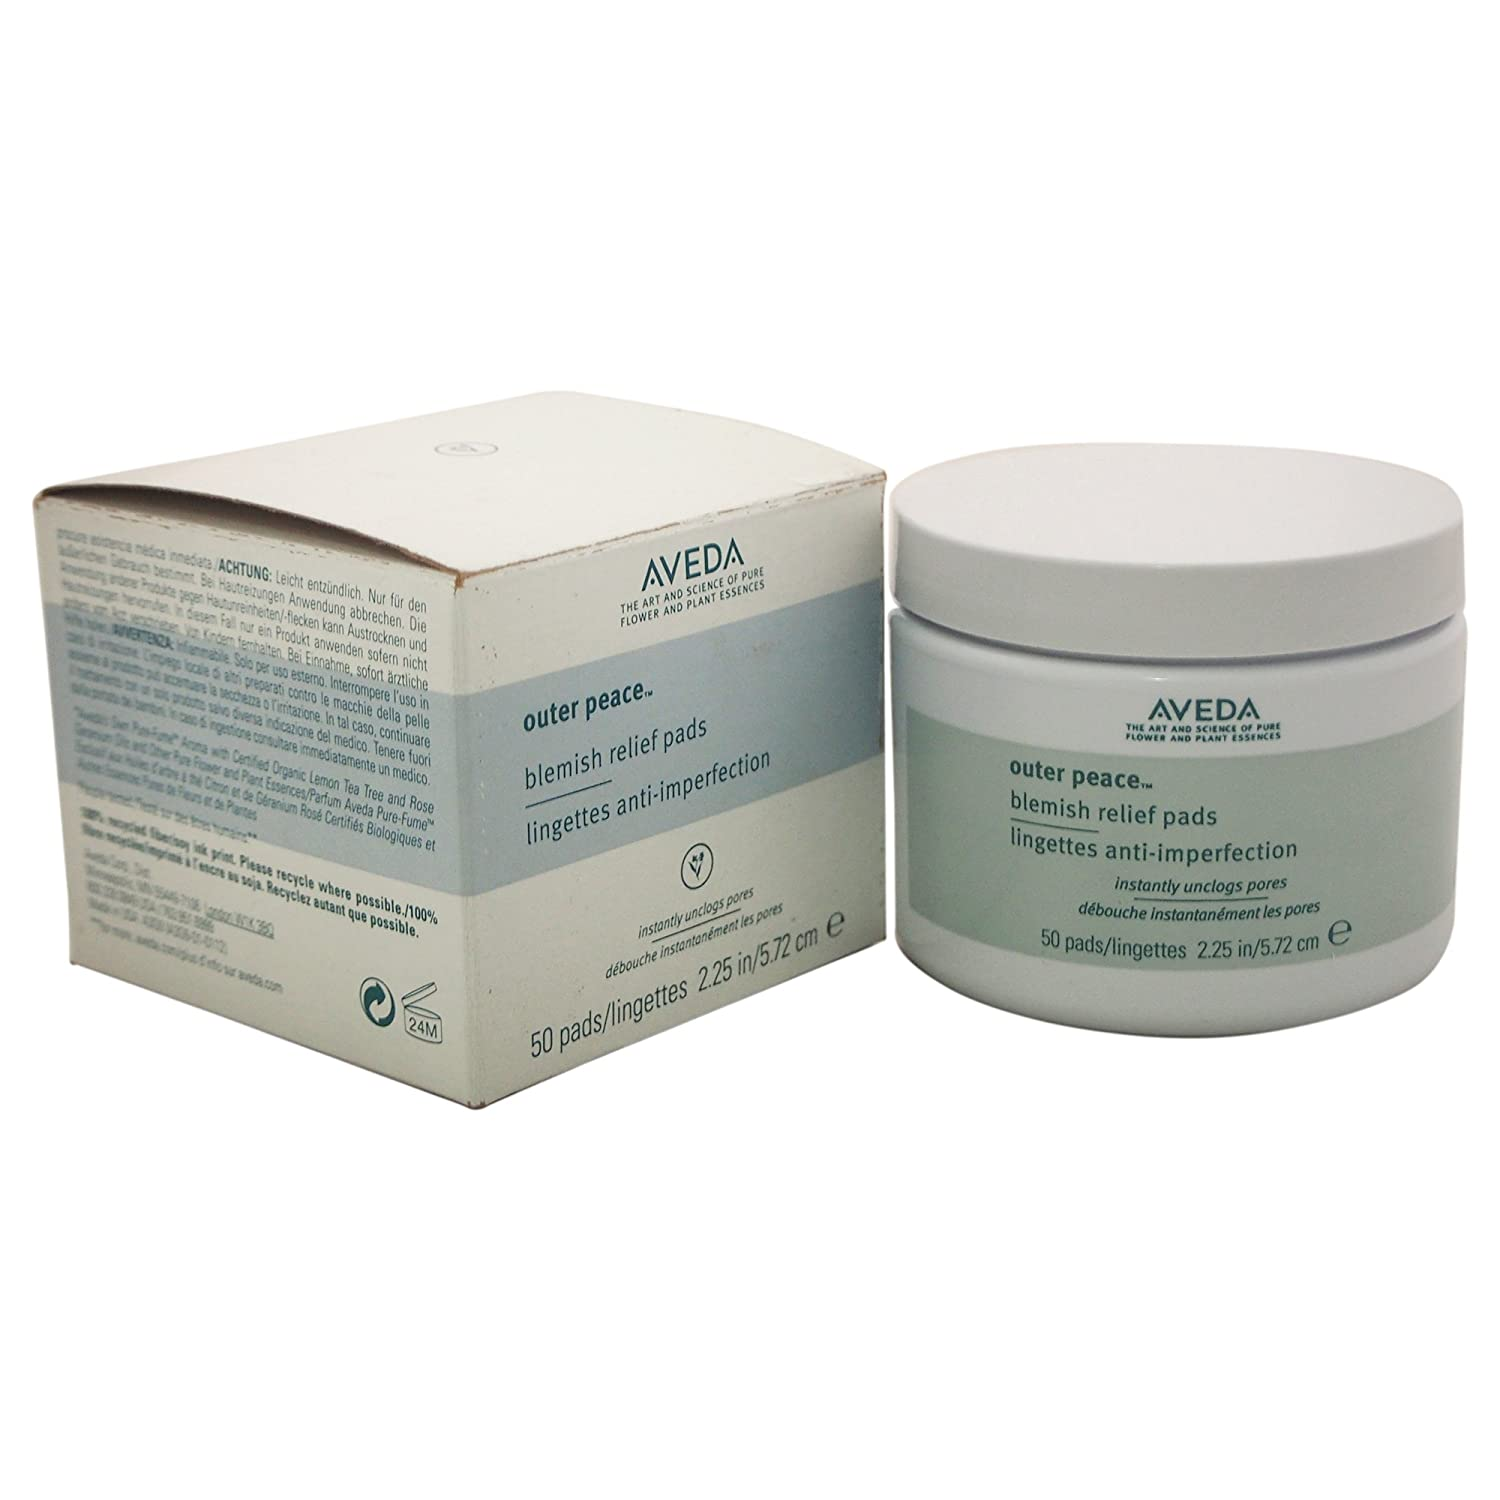 Aveda Outer Peace Exfoliating Pads, 50 pads TRTAZ11A